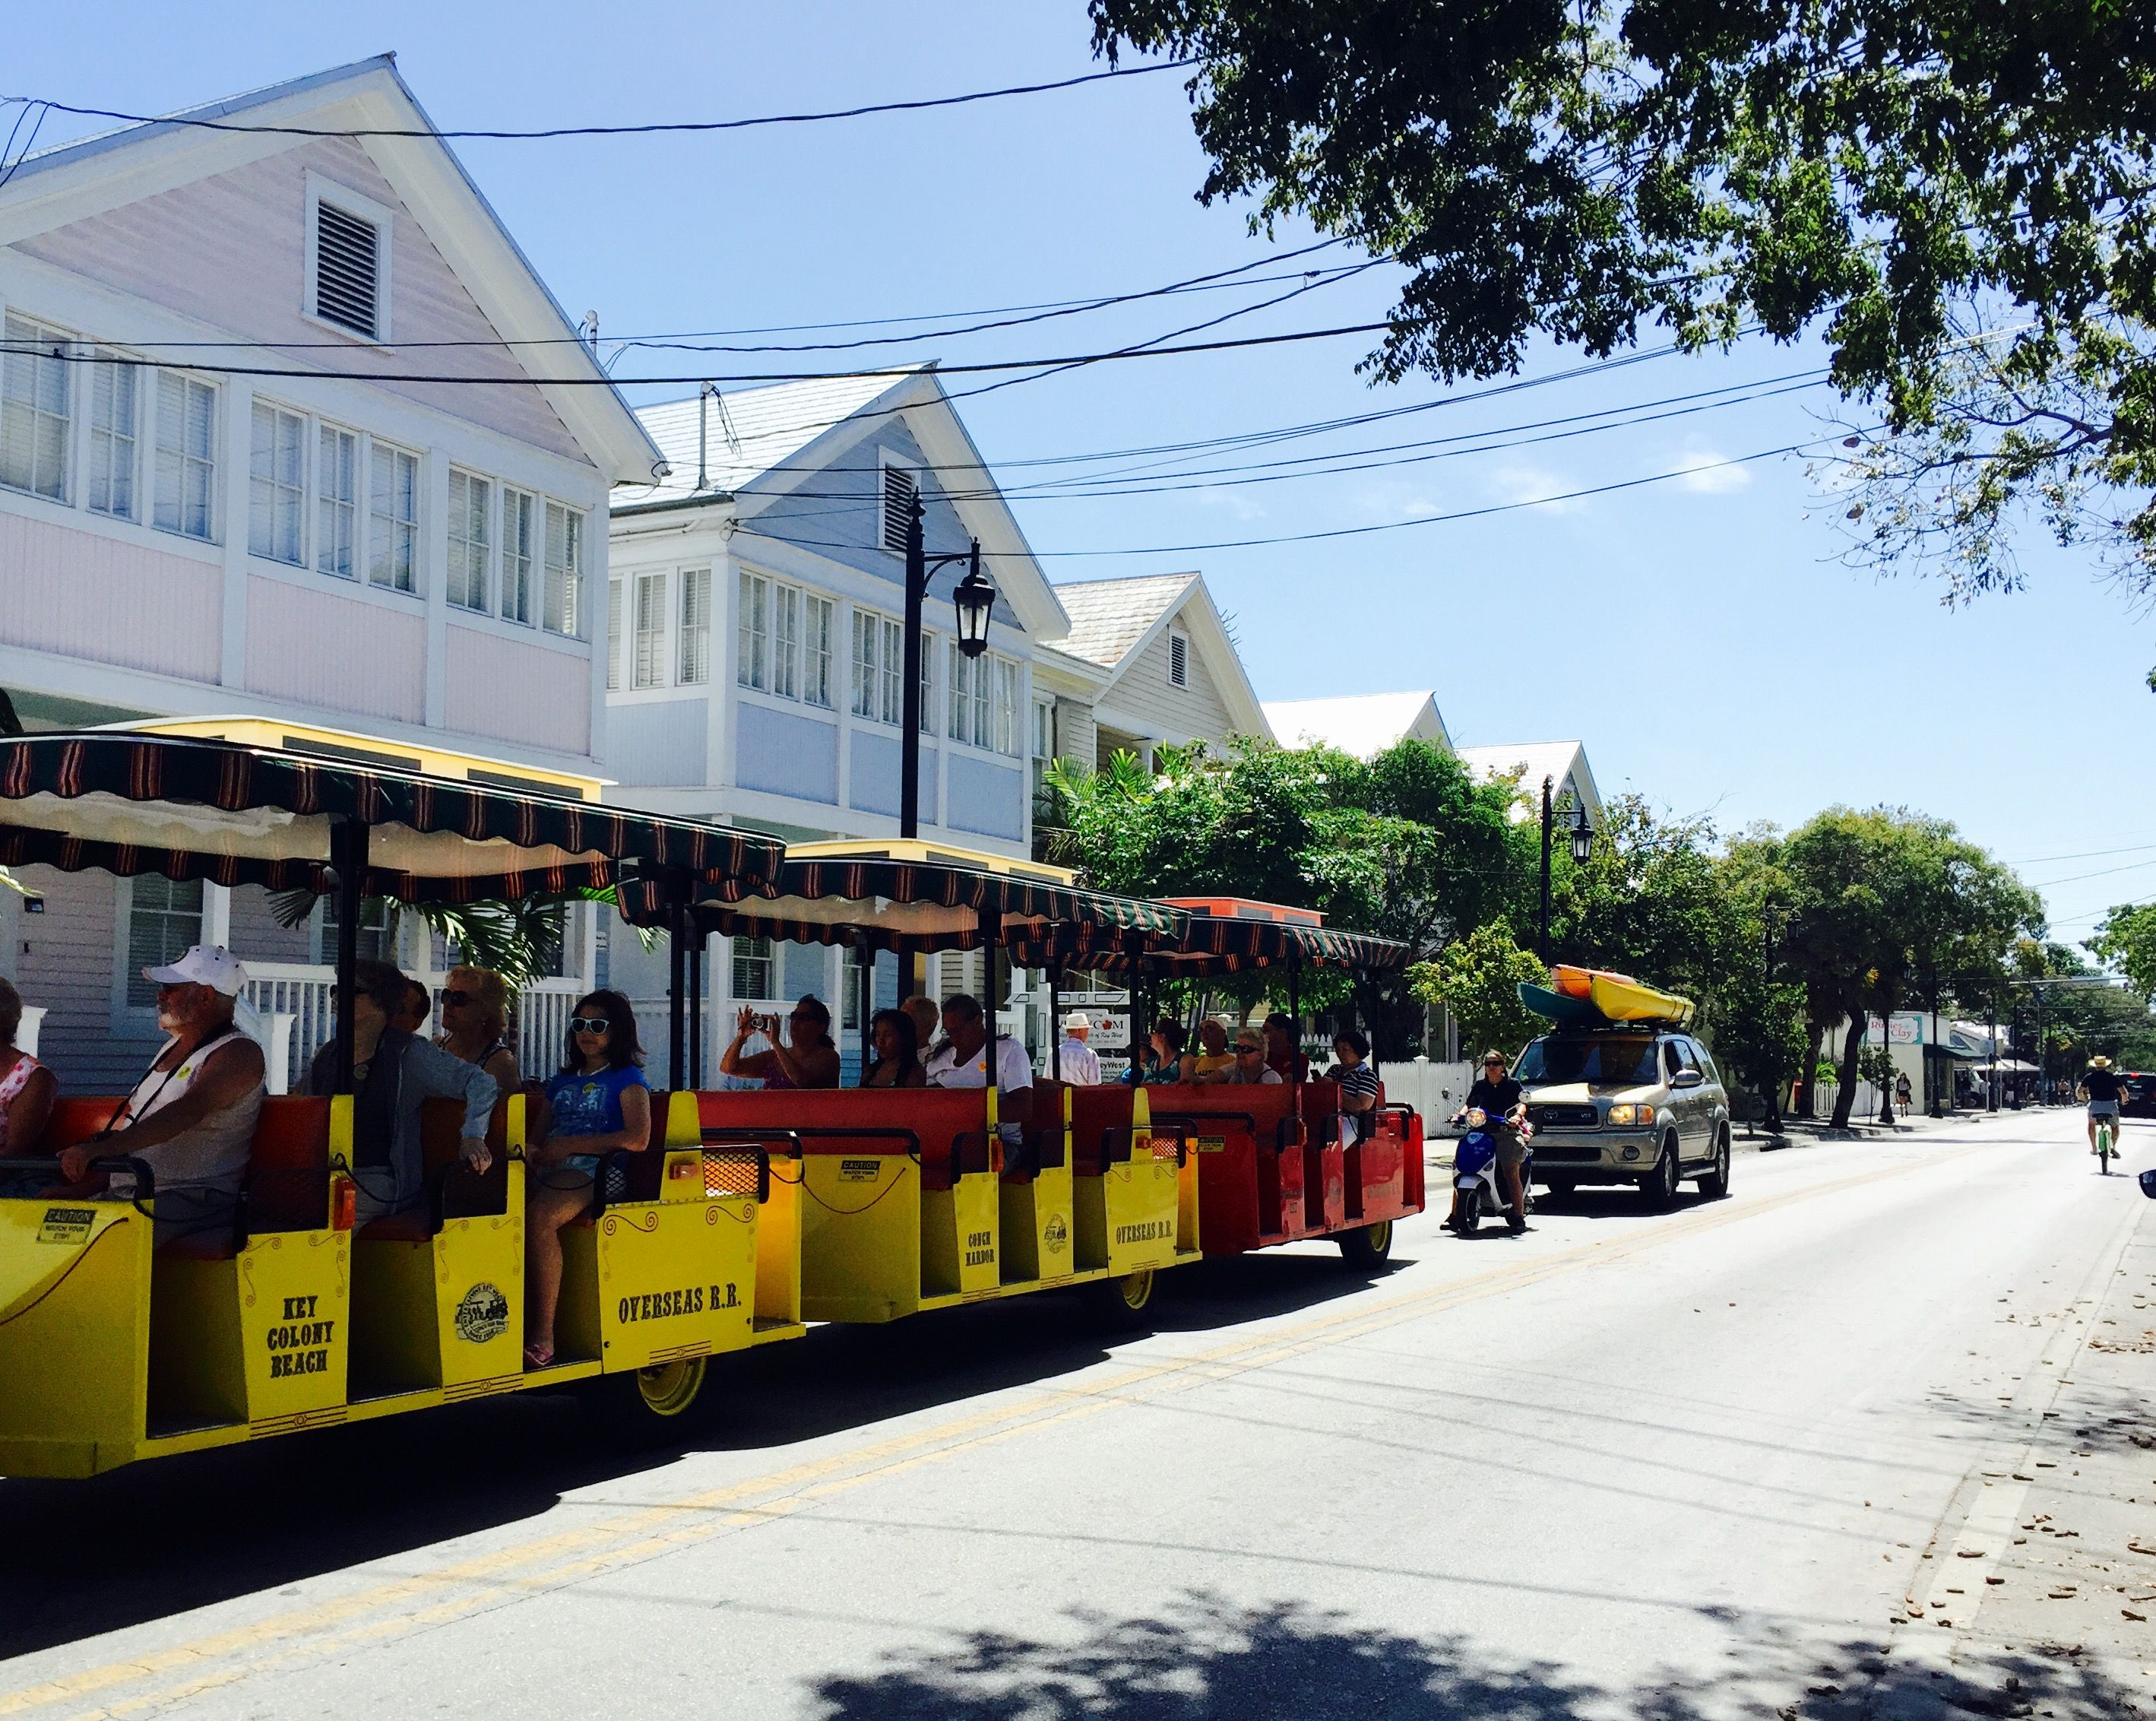 Keywest Conch Train Riding By Mile Marker 0 On Whitehead St